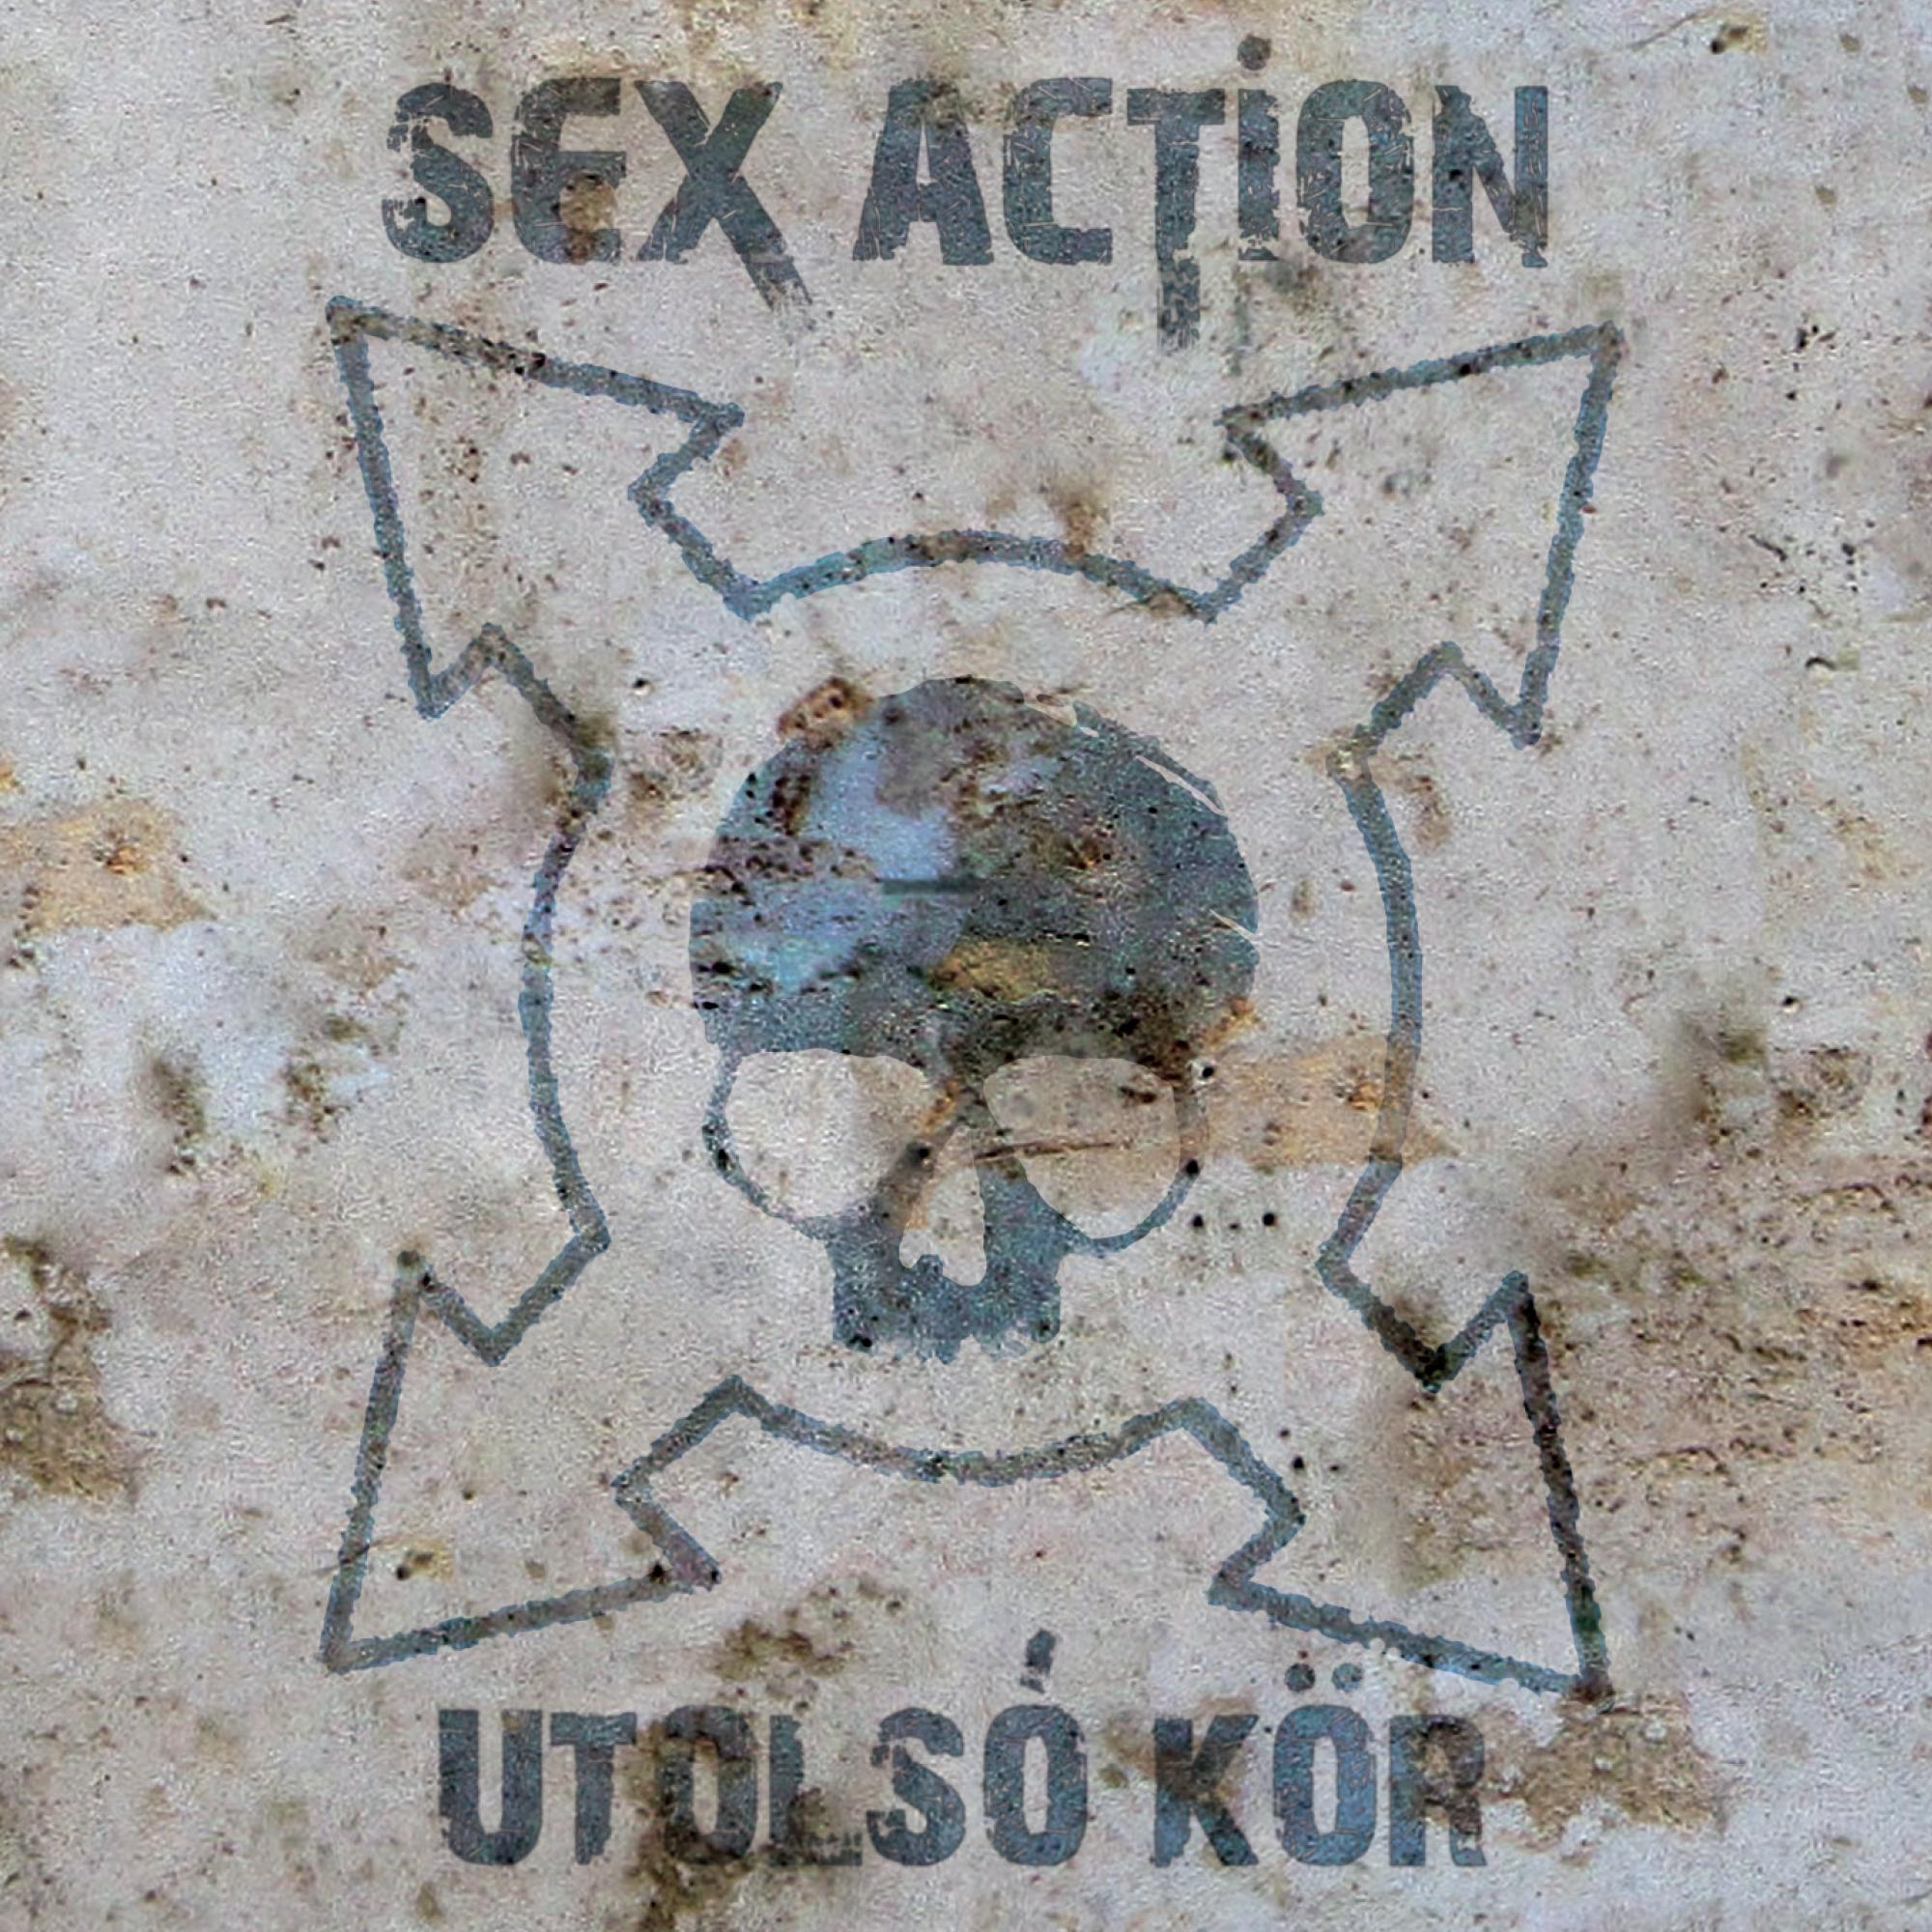 UTOLSÓ KÖR - SEX ACTION - CD -